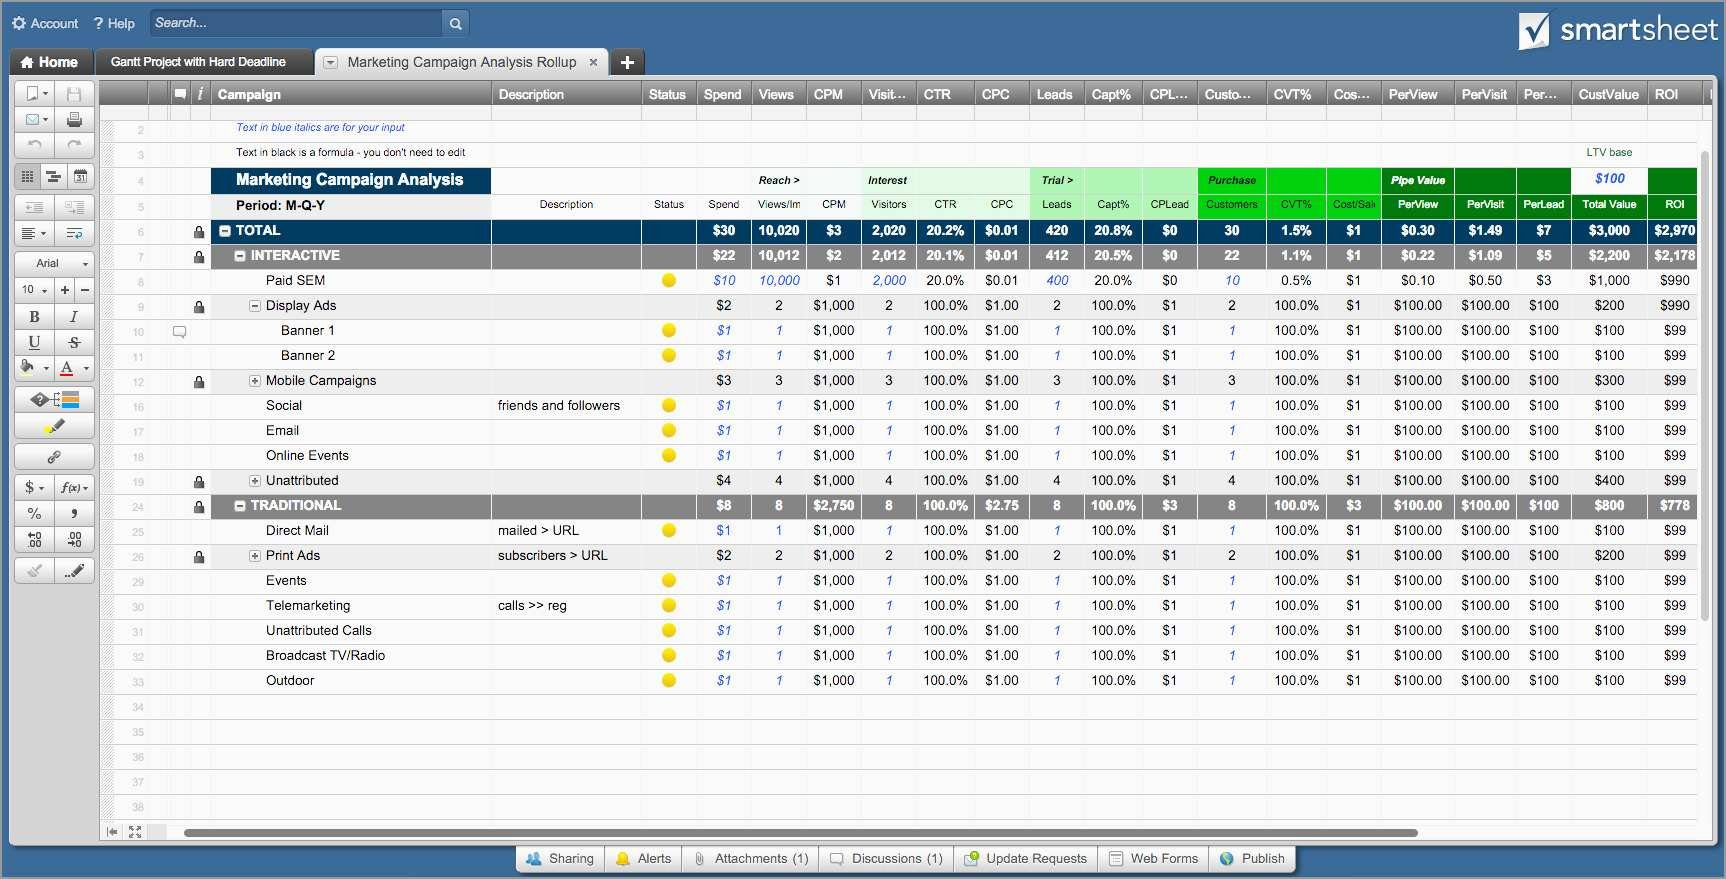 Best Of Free Excel Contract Management Template | Best Of Template Inside Contract Management Spreadsheet Template